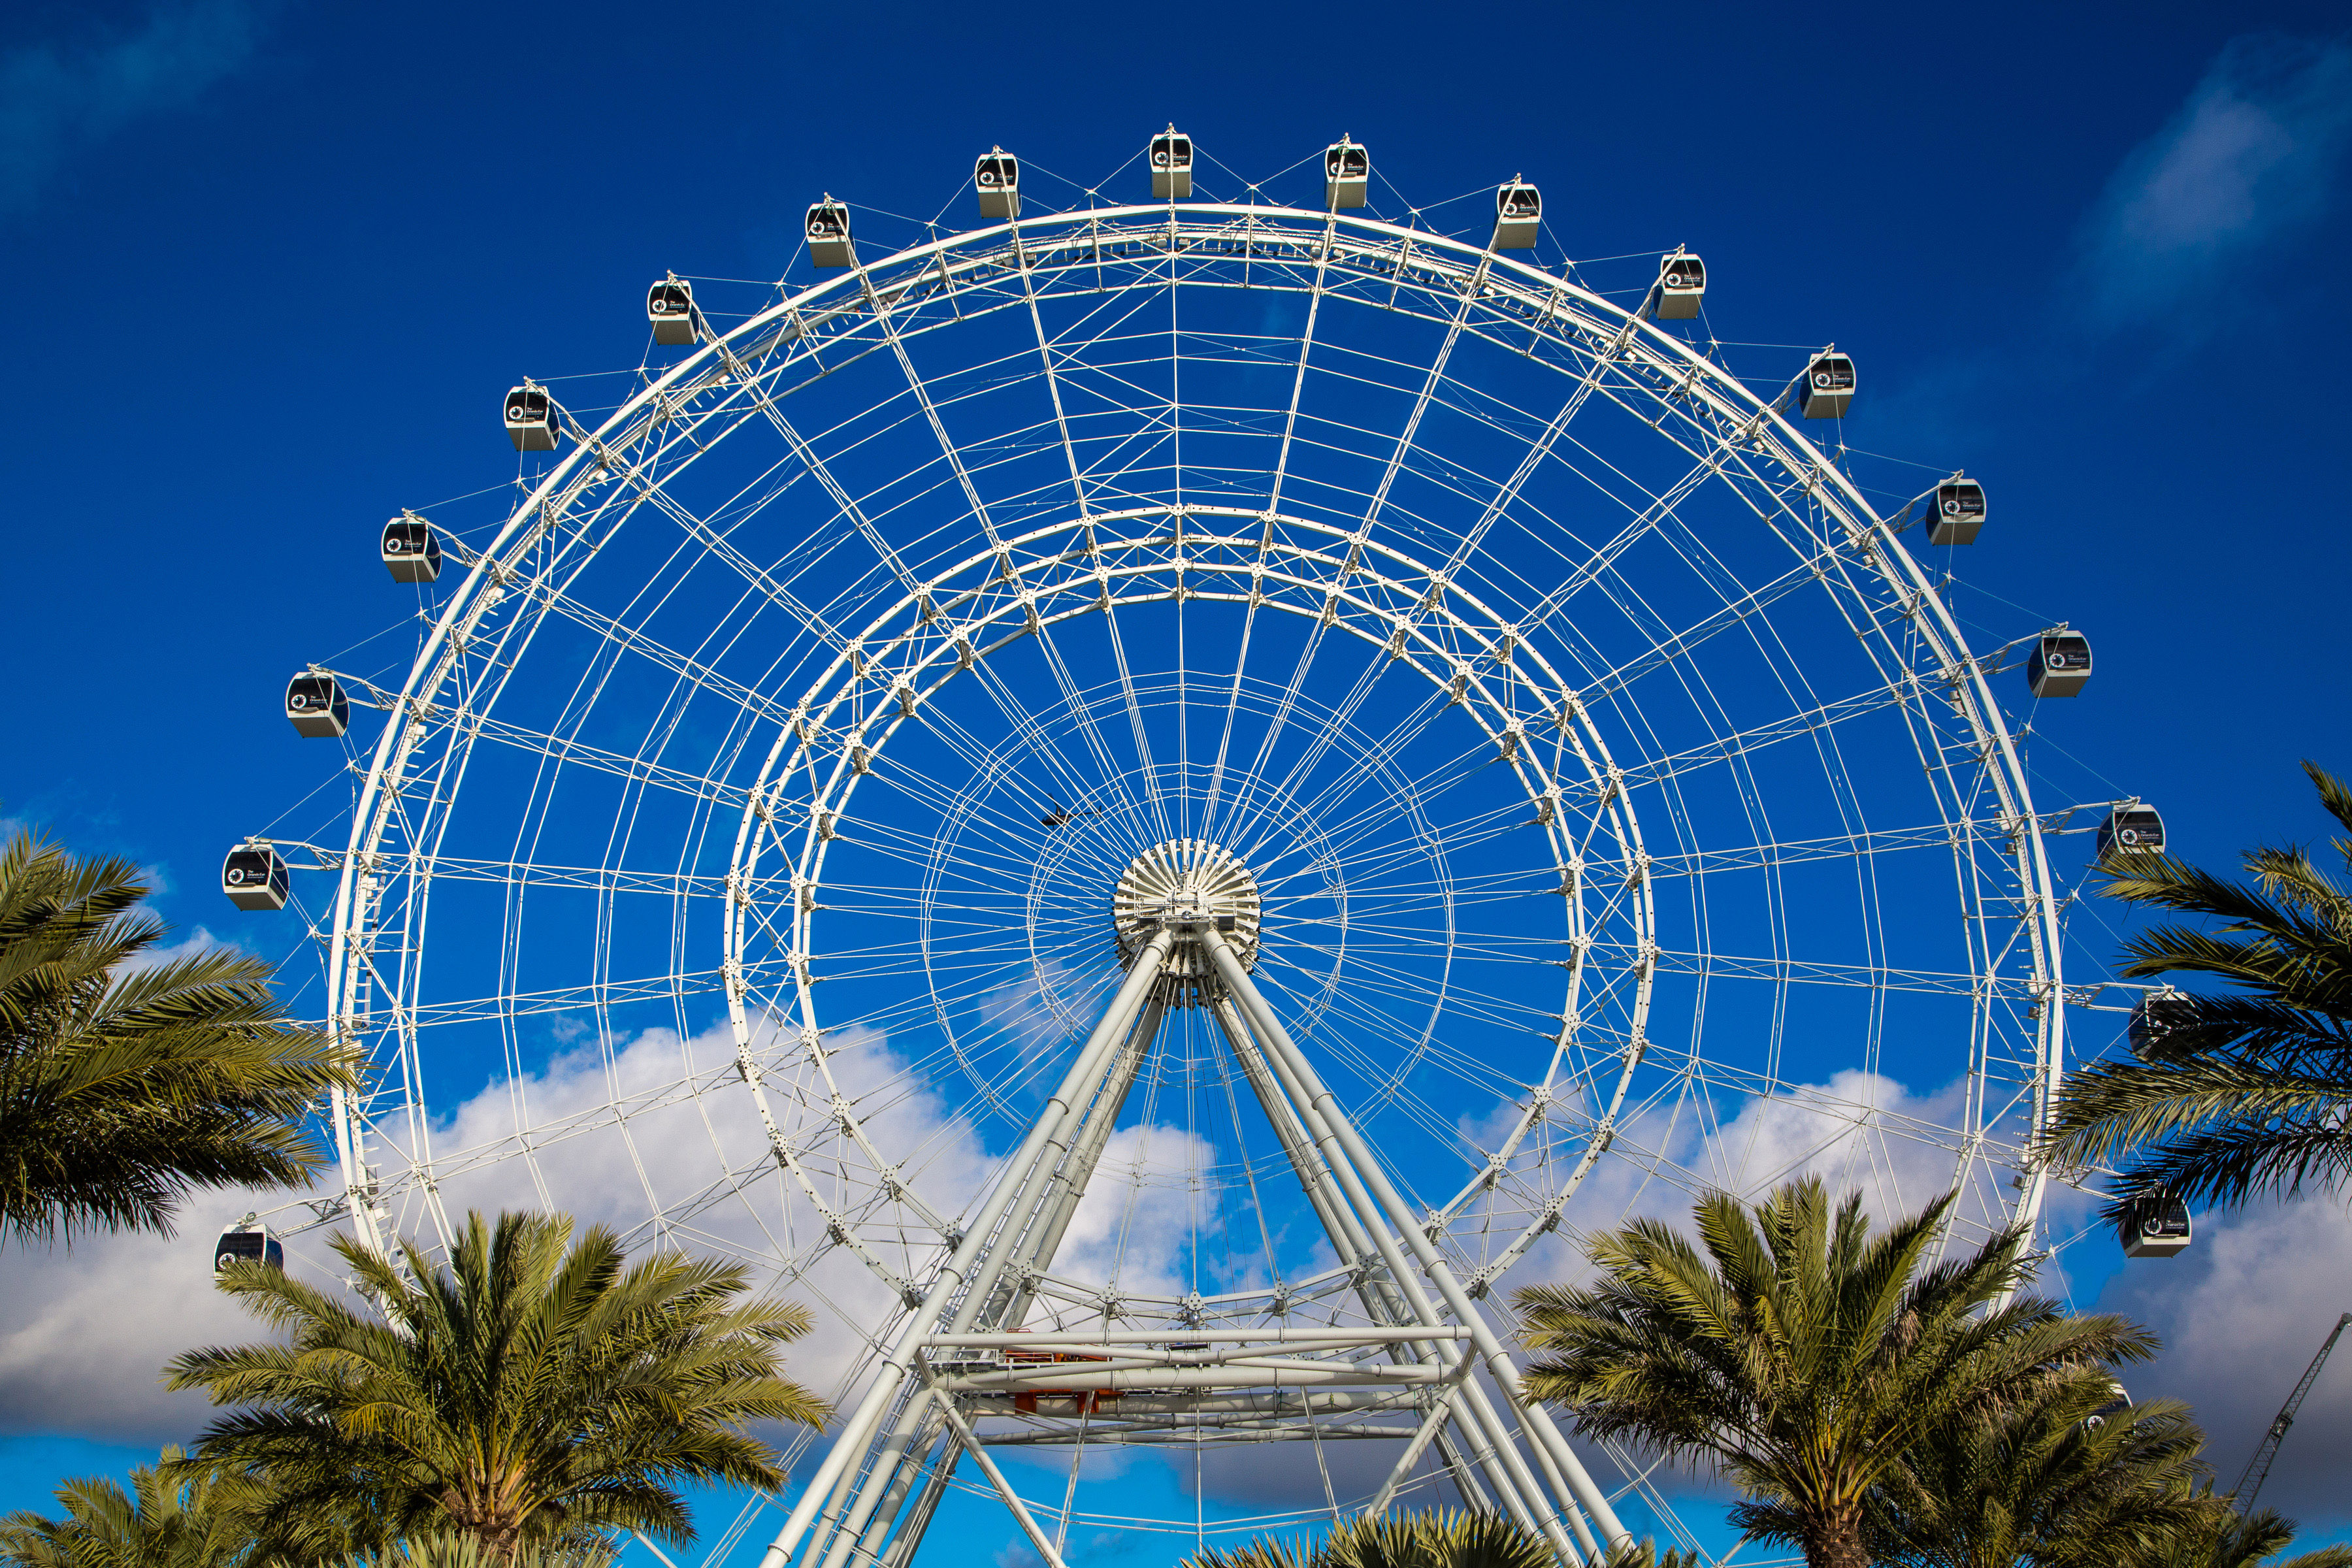 Merlin Entertainments PLC Announces Grand Opening Dates and Ticket Prices for The Orlando Eye, Madame Tussauds and SEA LIFE Aquarium